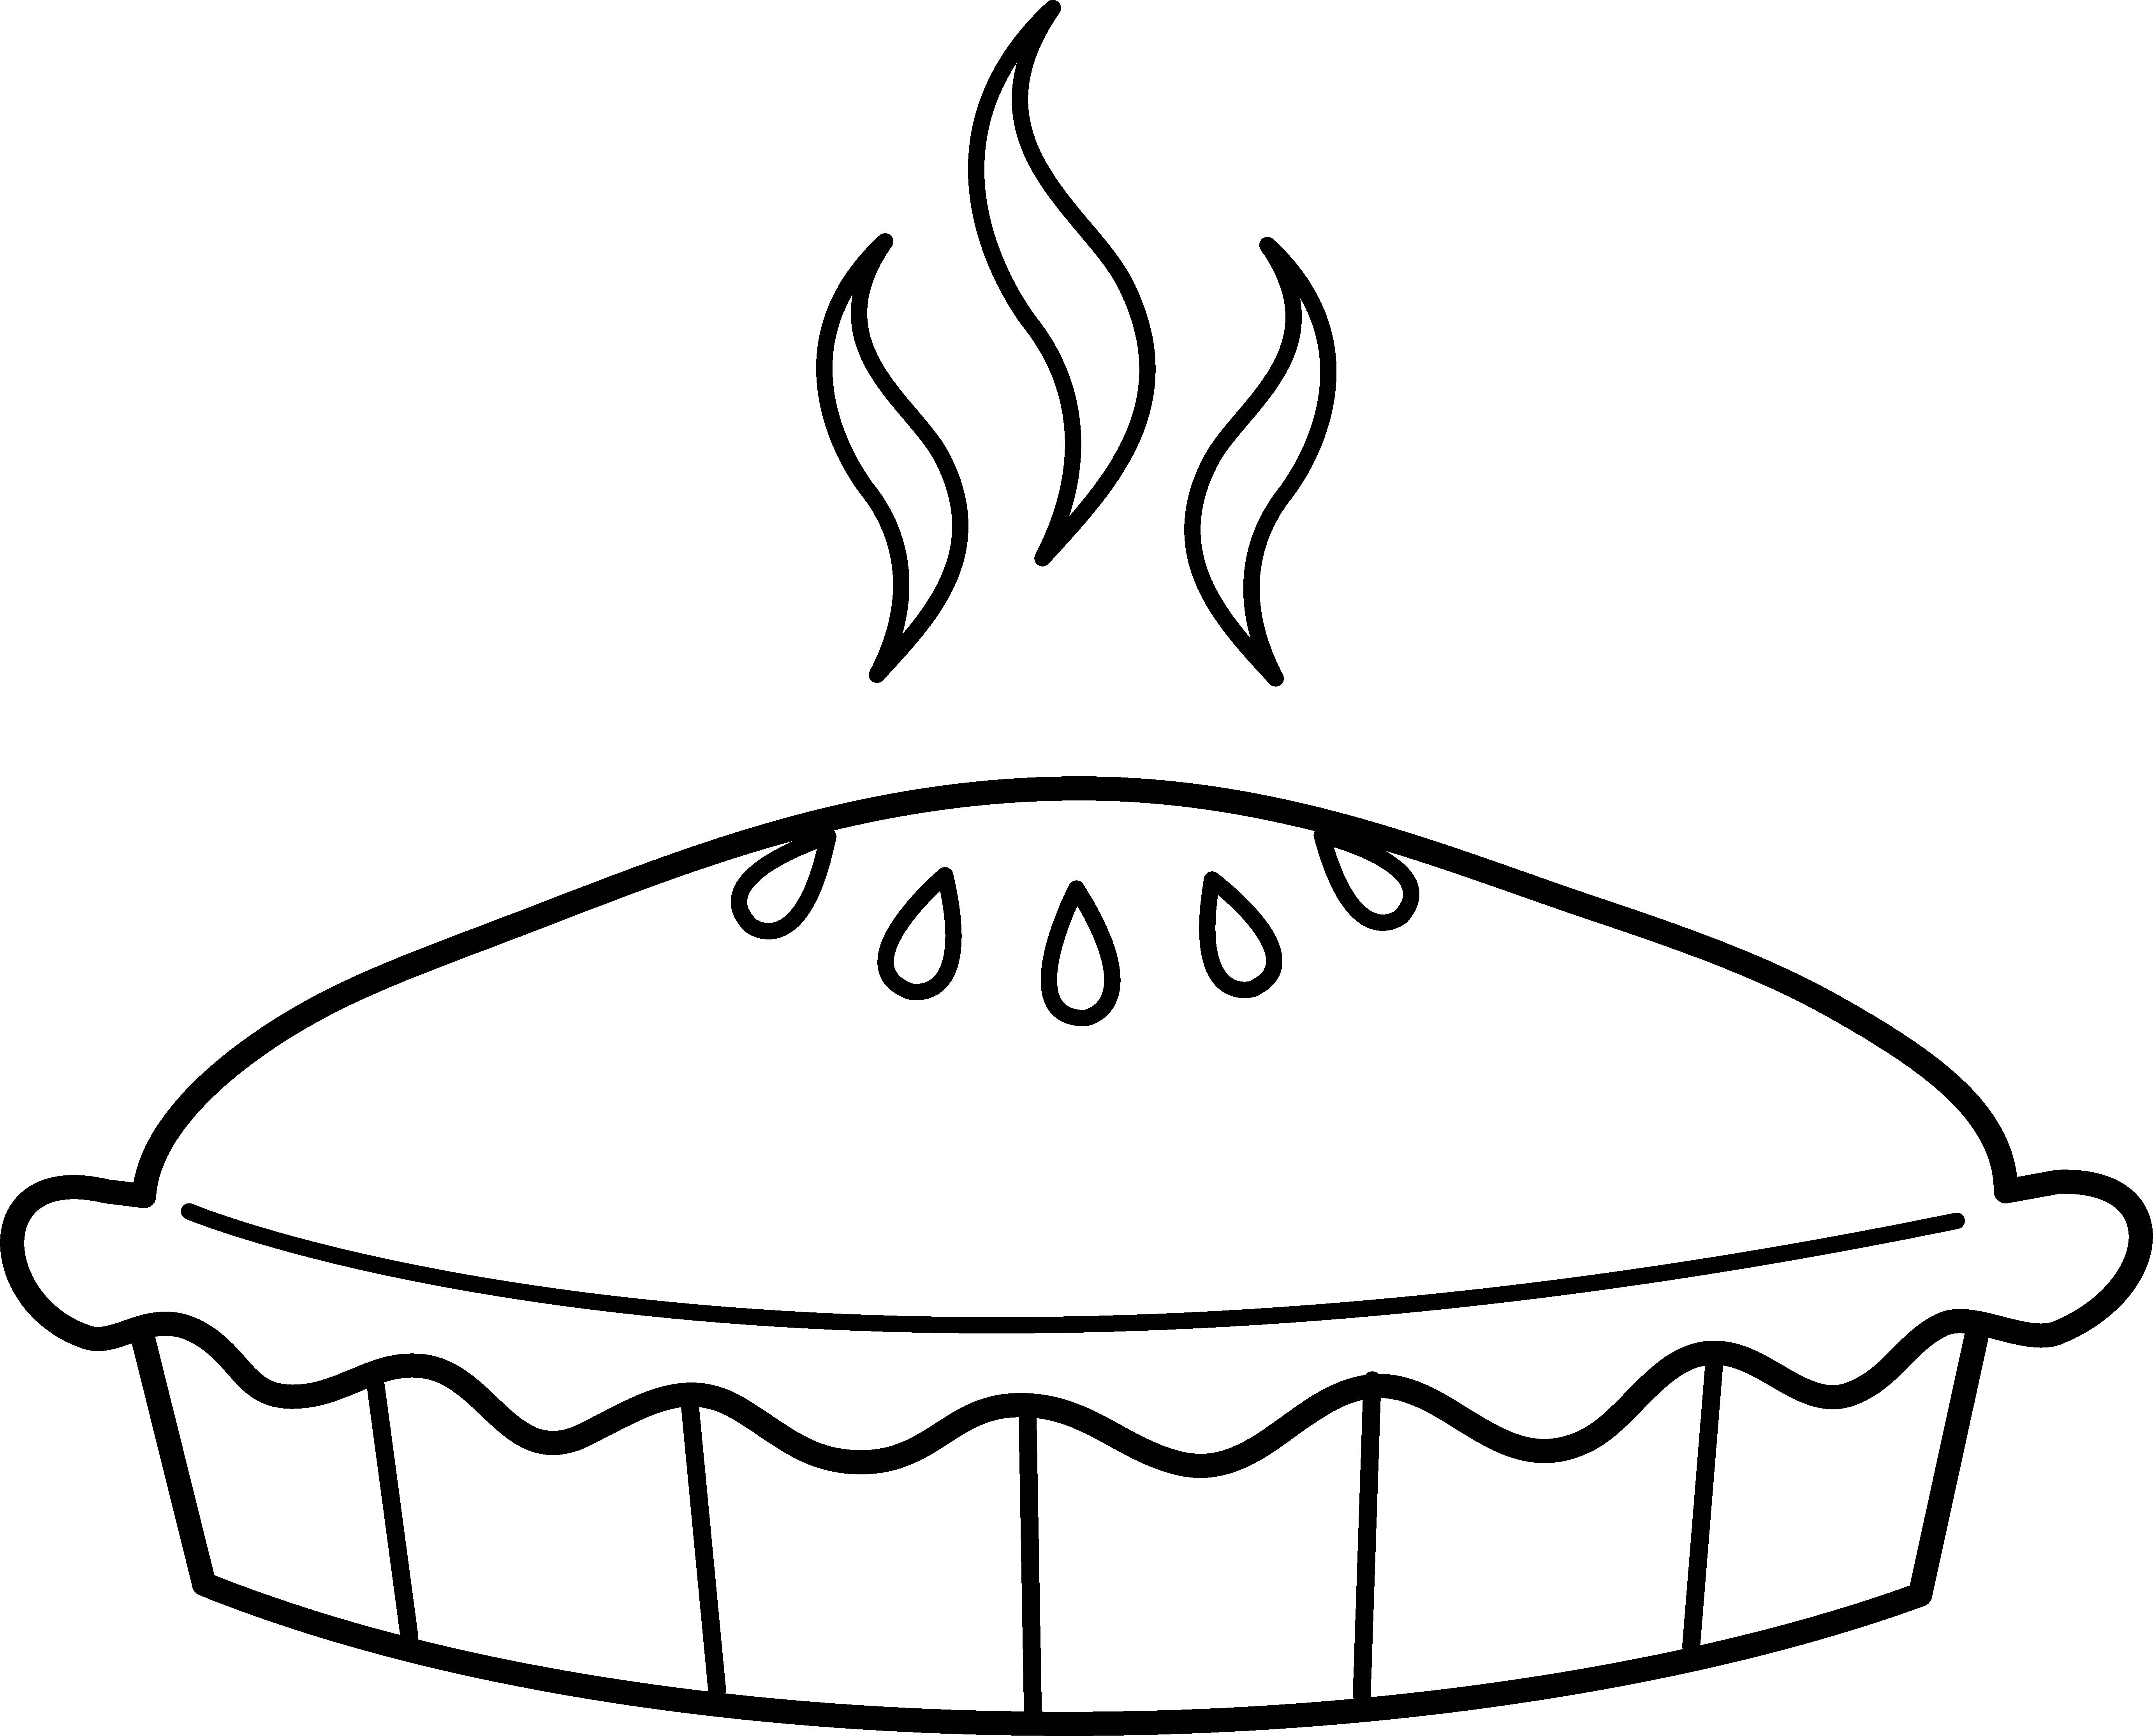 Easy Pie Coloring Pages